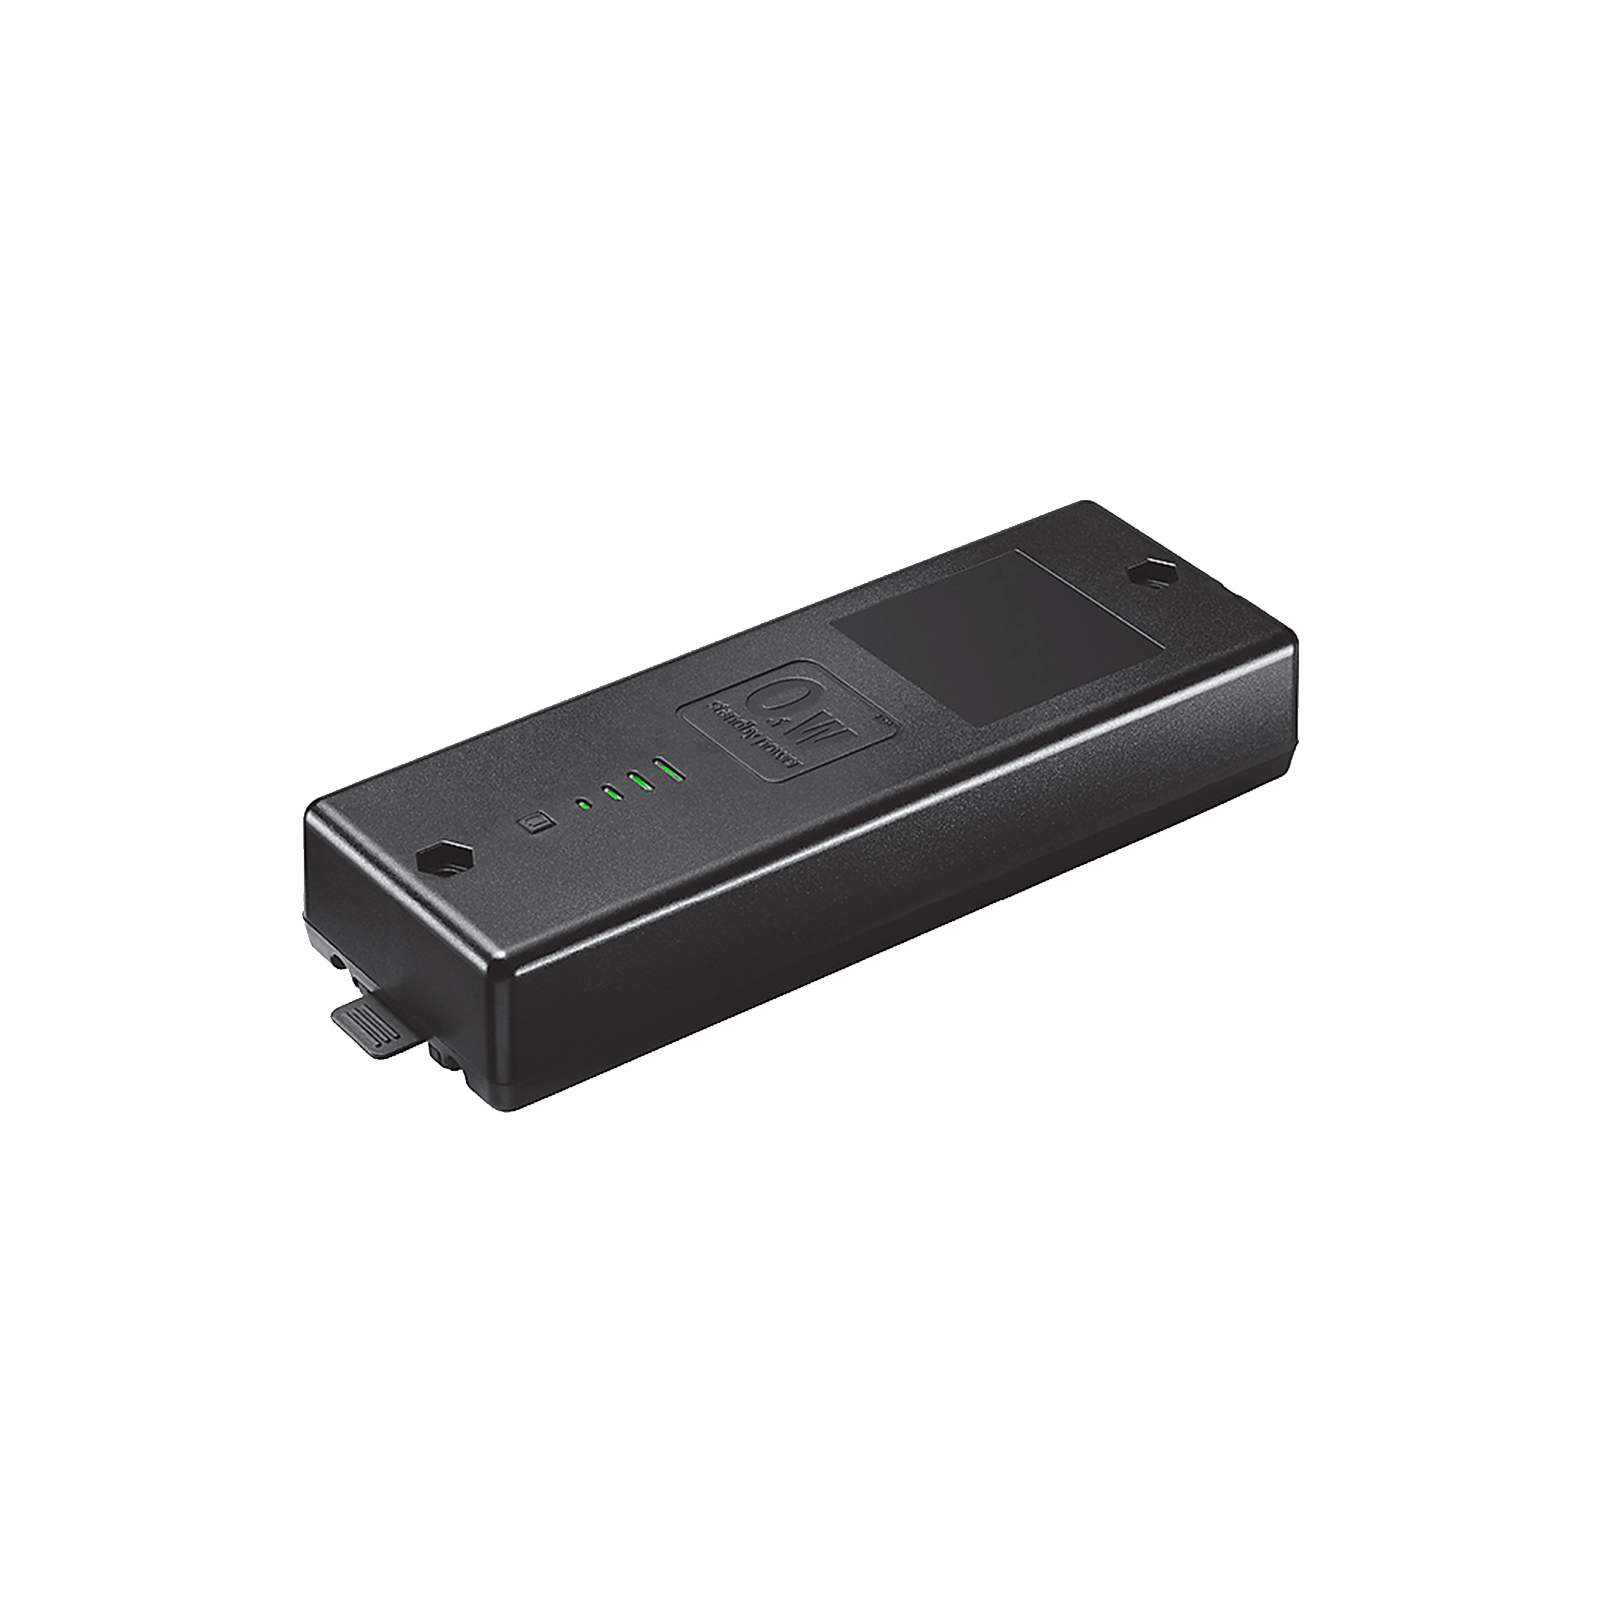 UpDesk Wireless Battery Pack